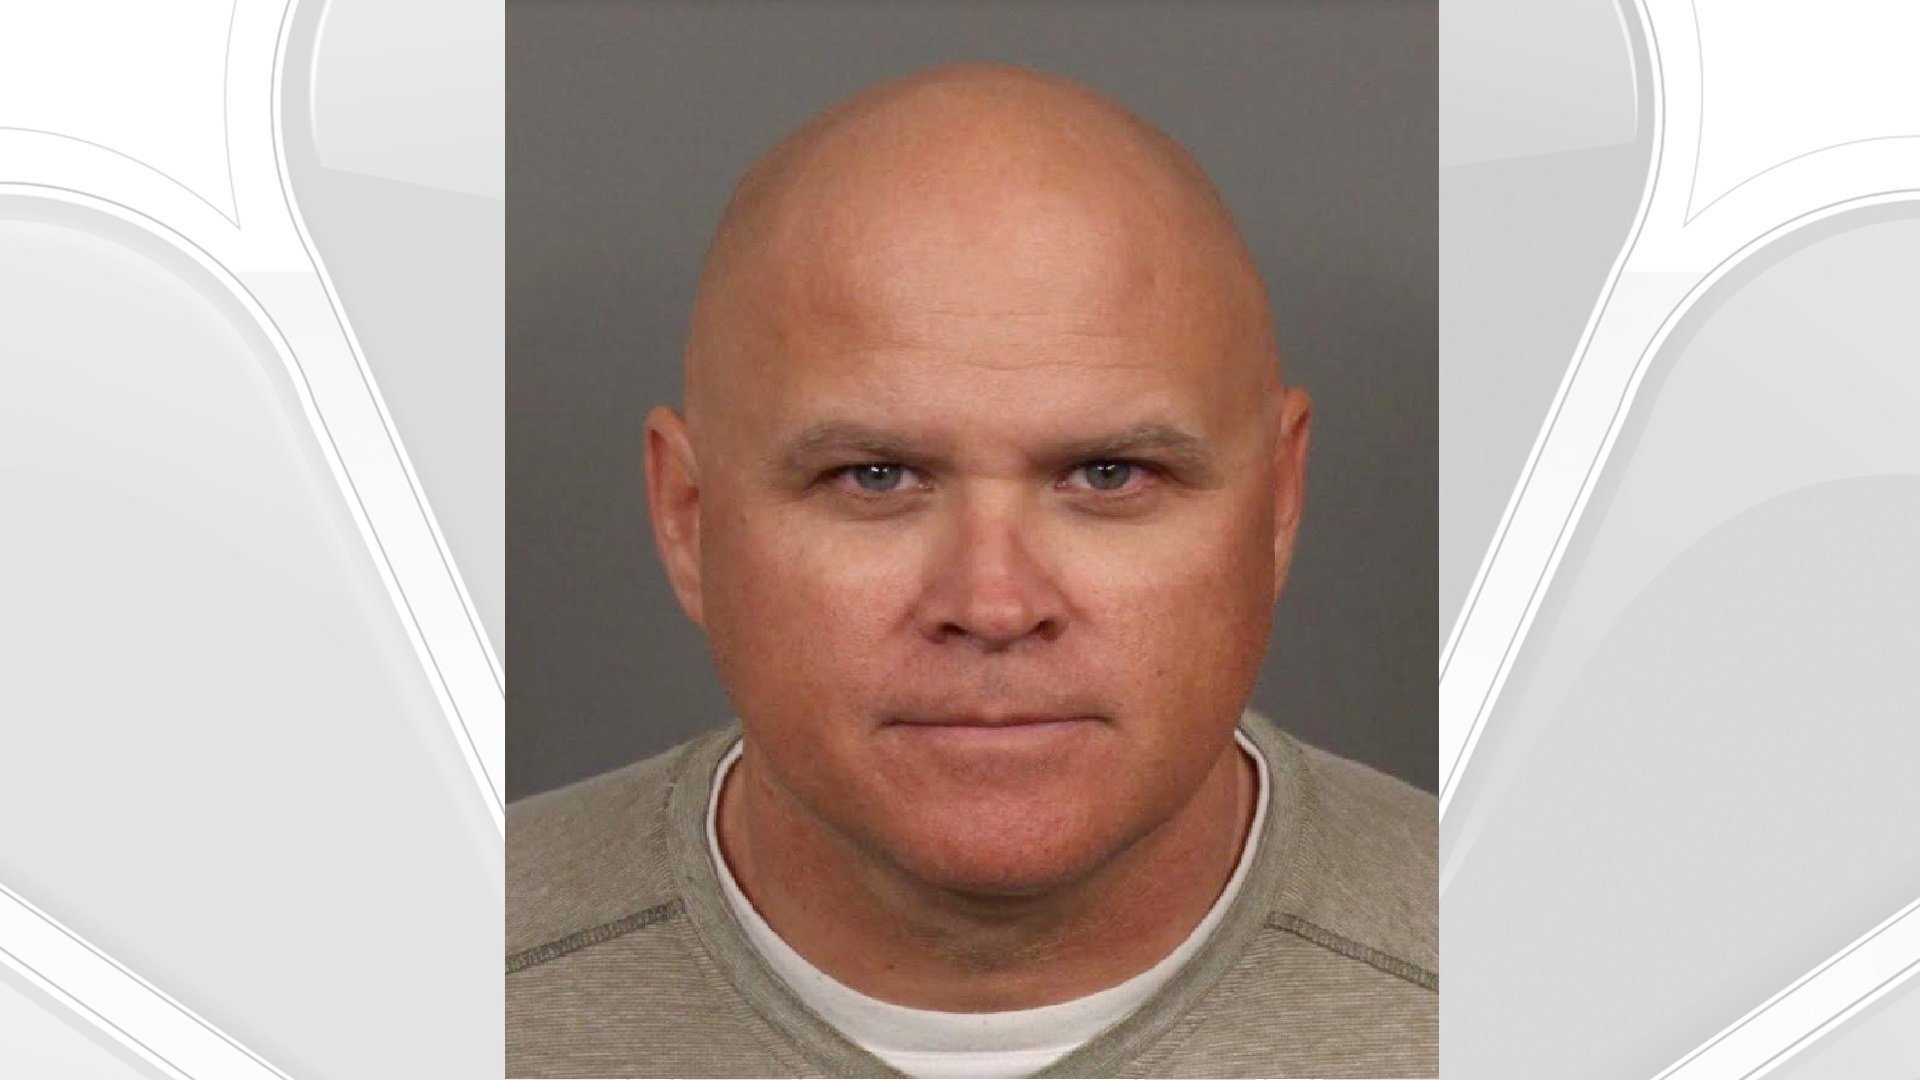 Security guard Indio School Arrested for Alleged Inappropriate Texts With Student